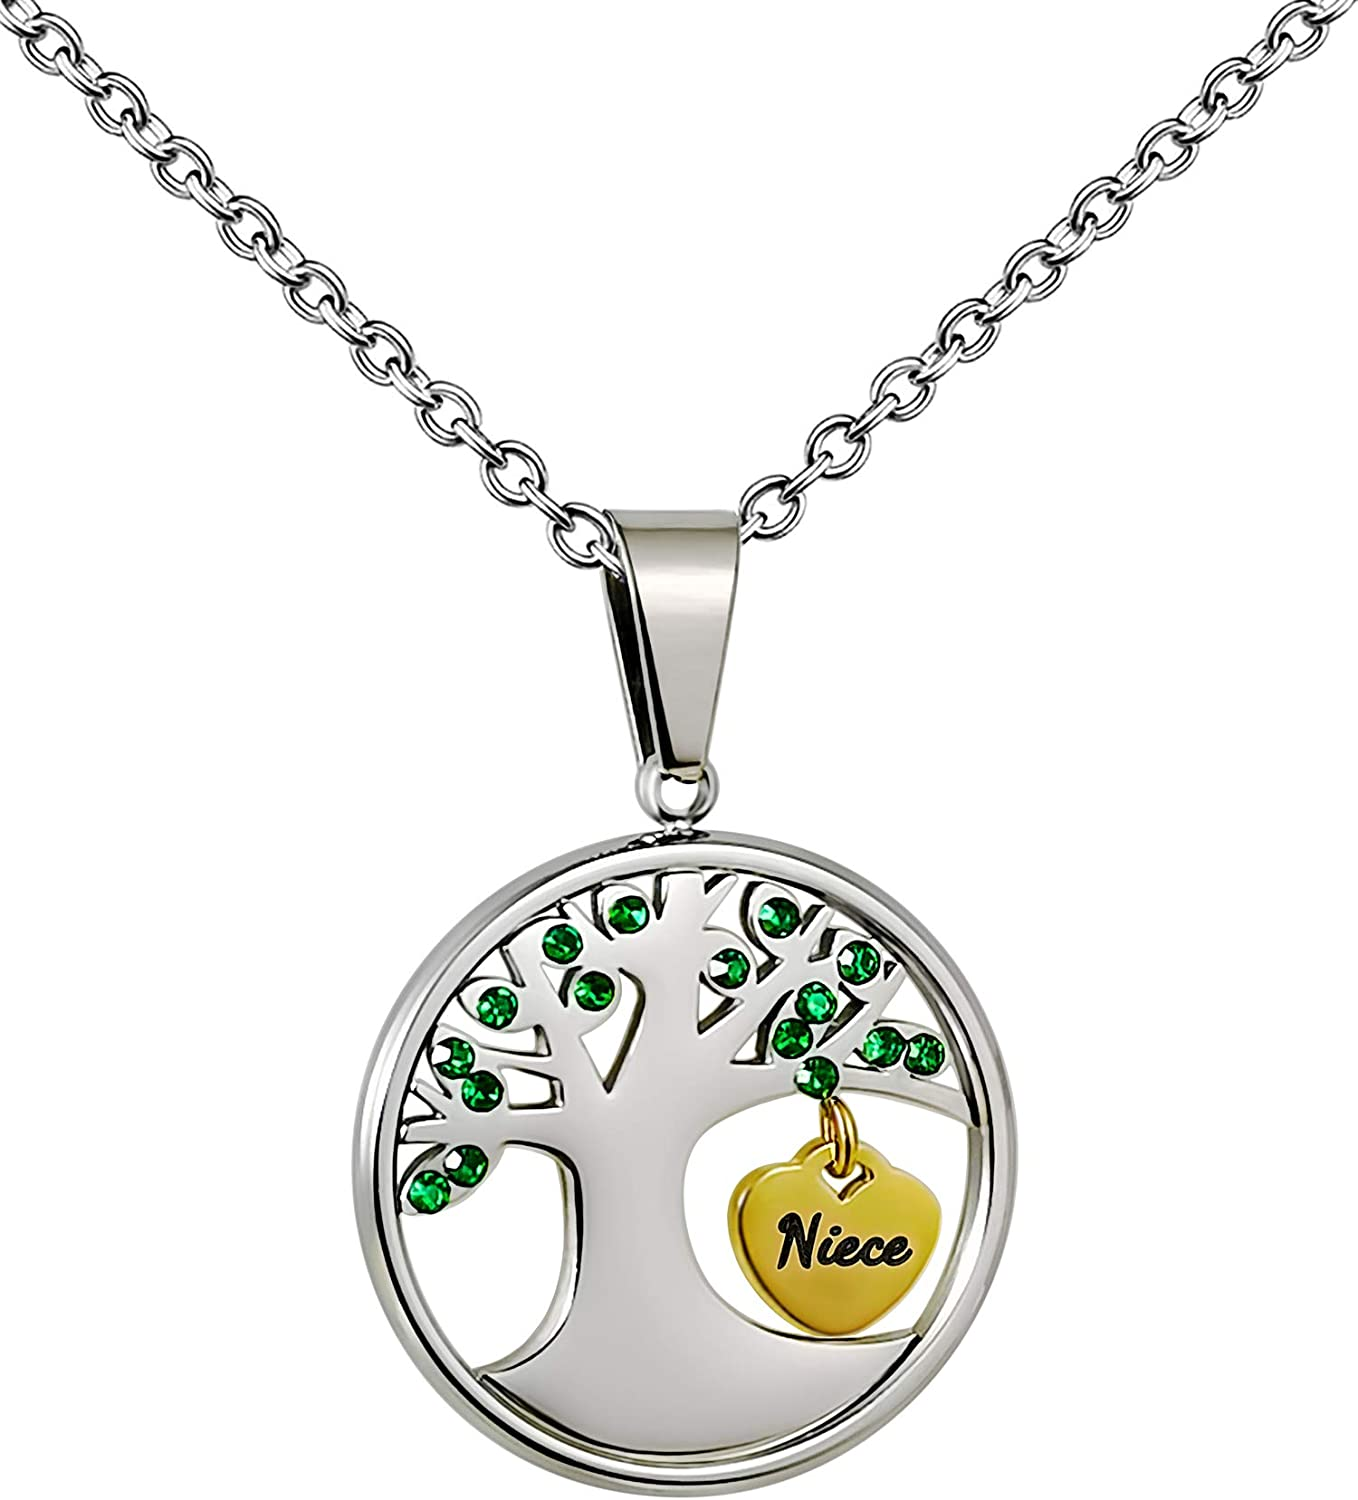 PHOCKSIN Family Tree of Life Necklace Green CZ Paved | Birthday Gifts for Mom Grandma Aunt Niece Sister Nana Family,18